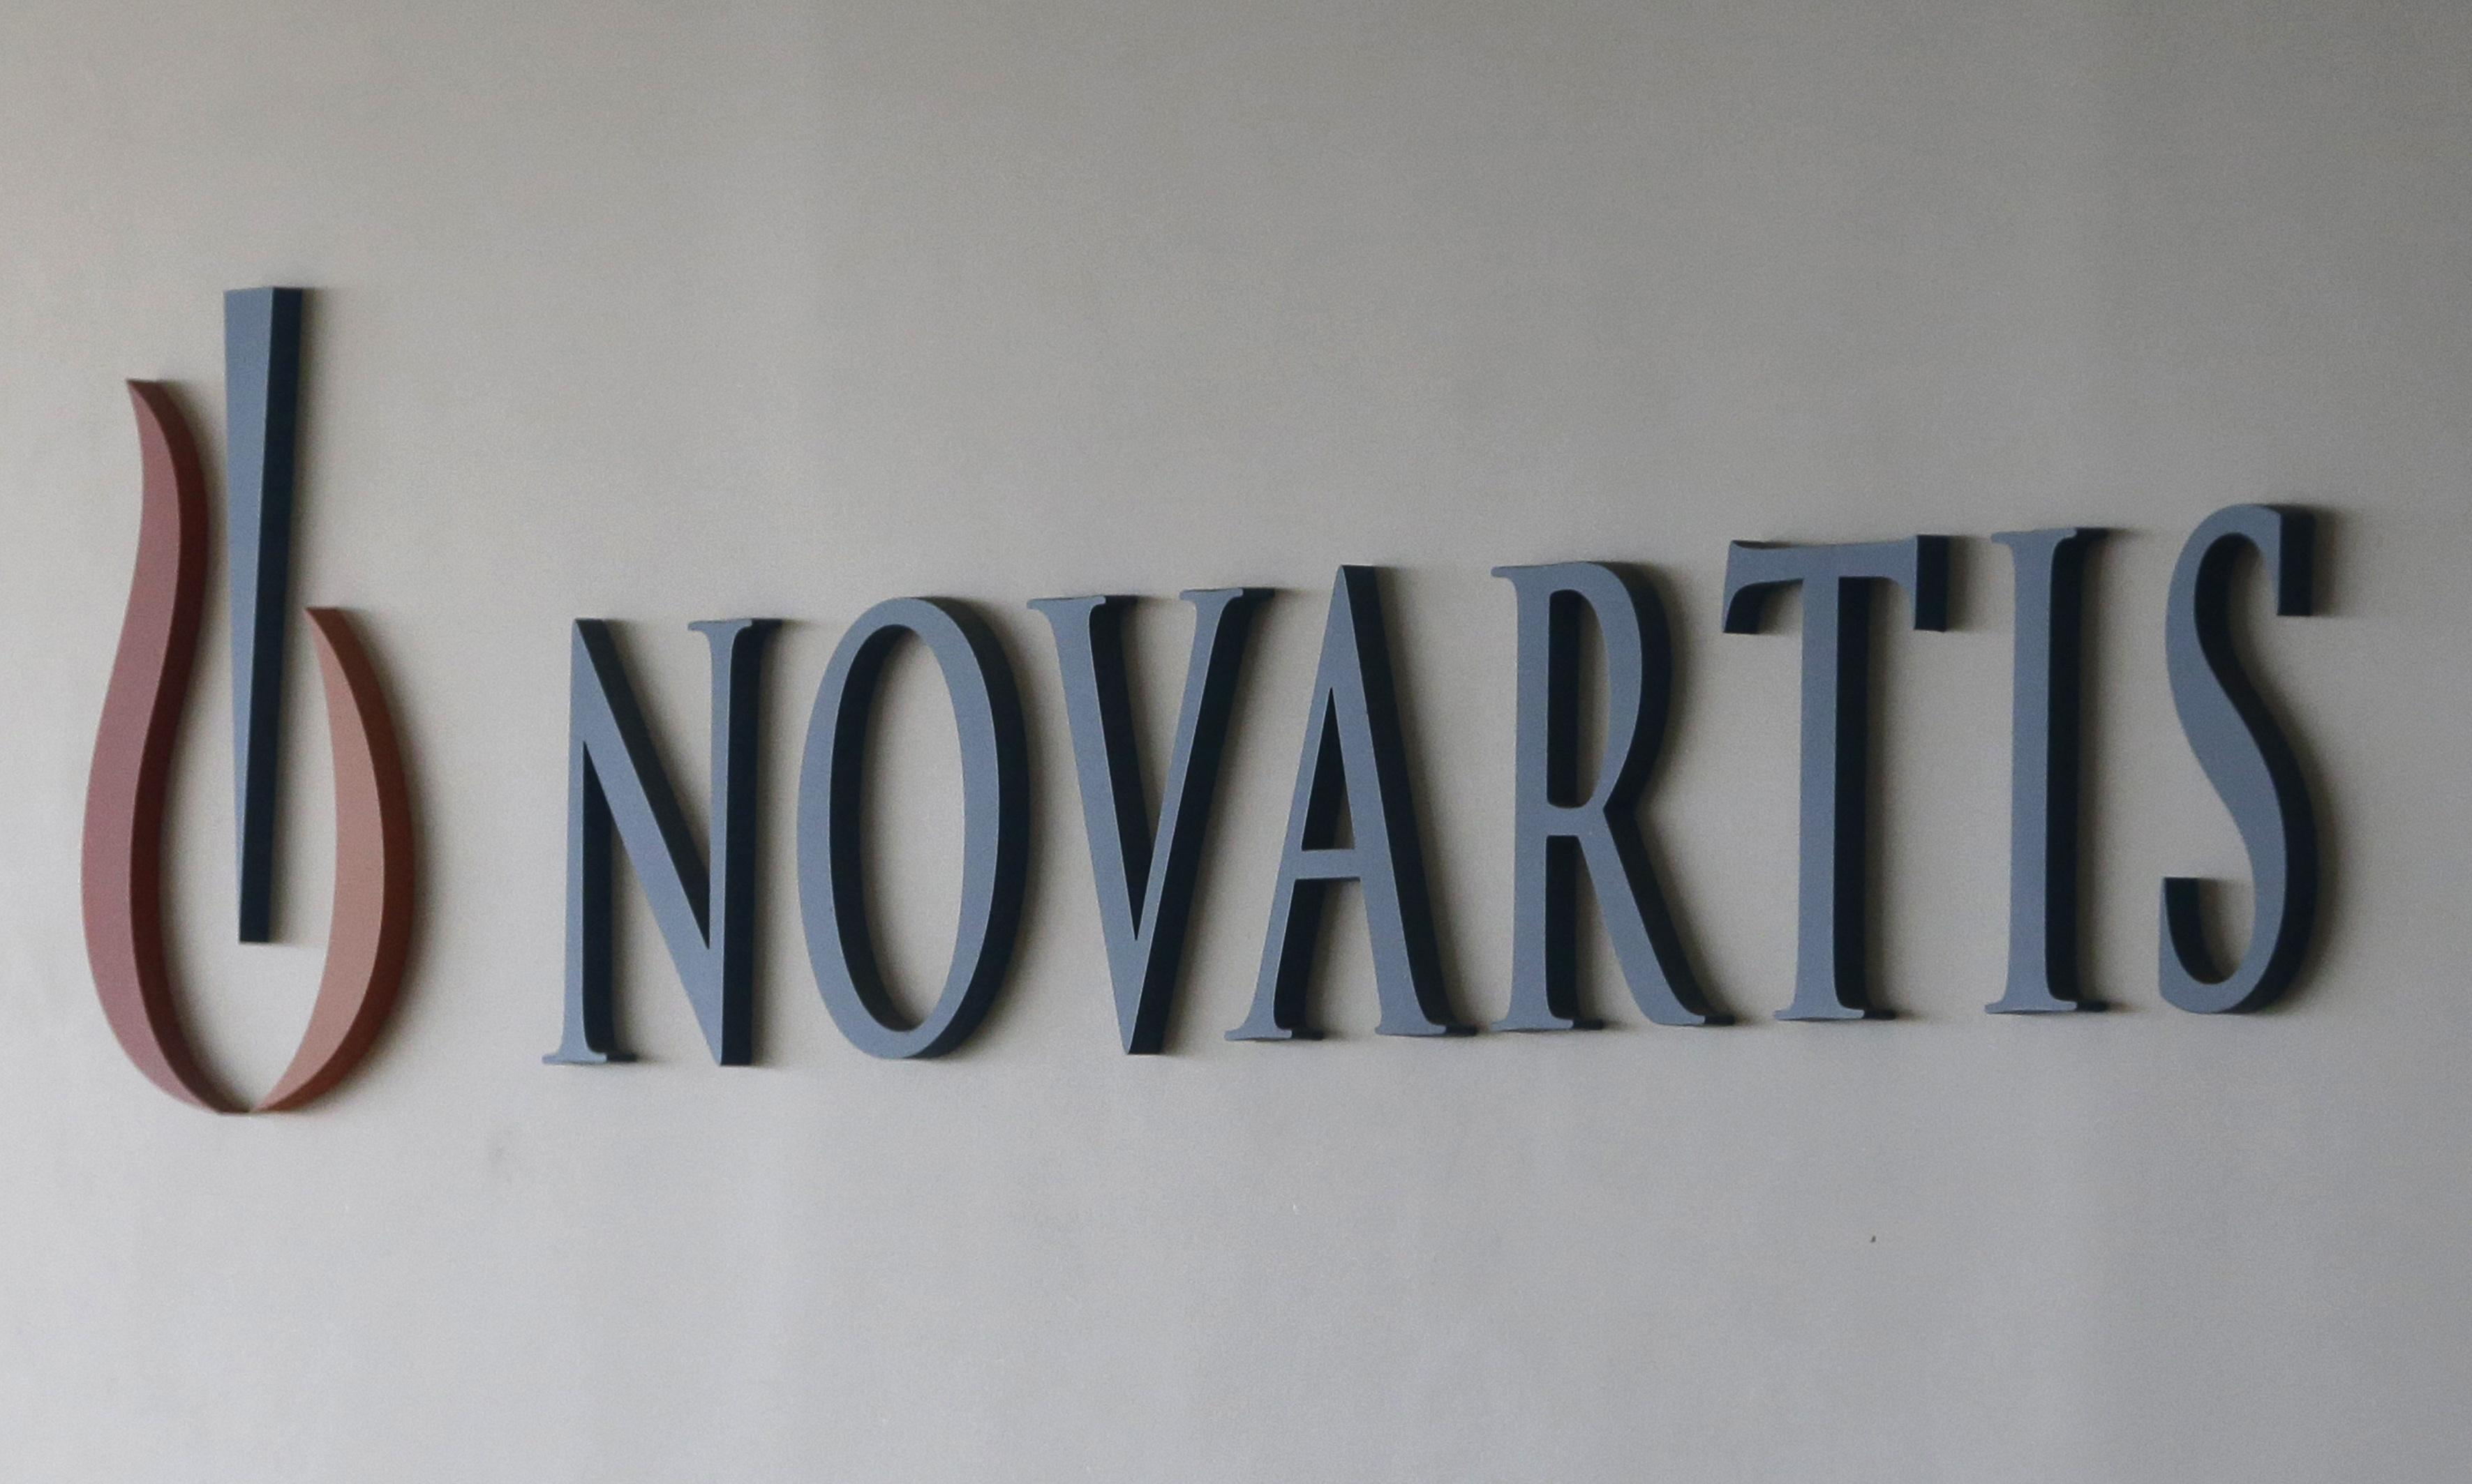 $2.1m Novartis gene therapy to become world's most expensive drug